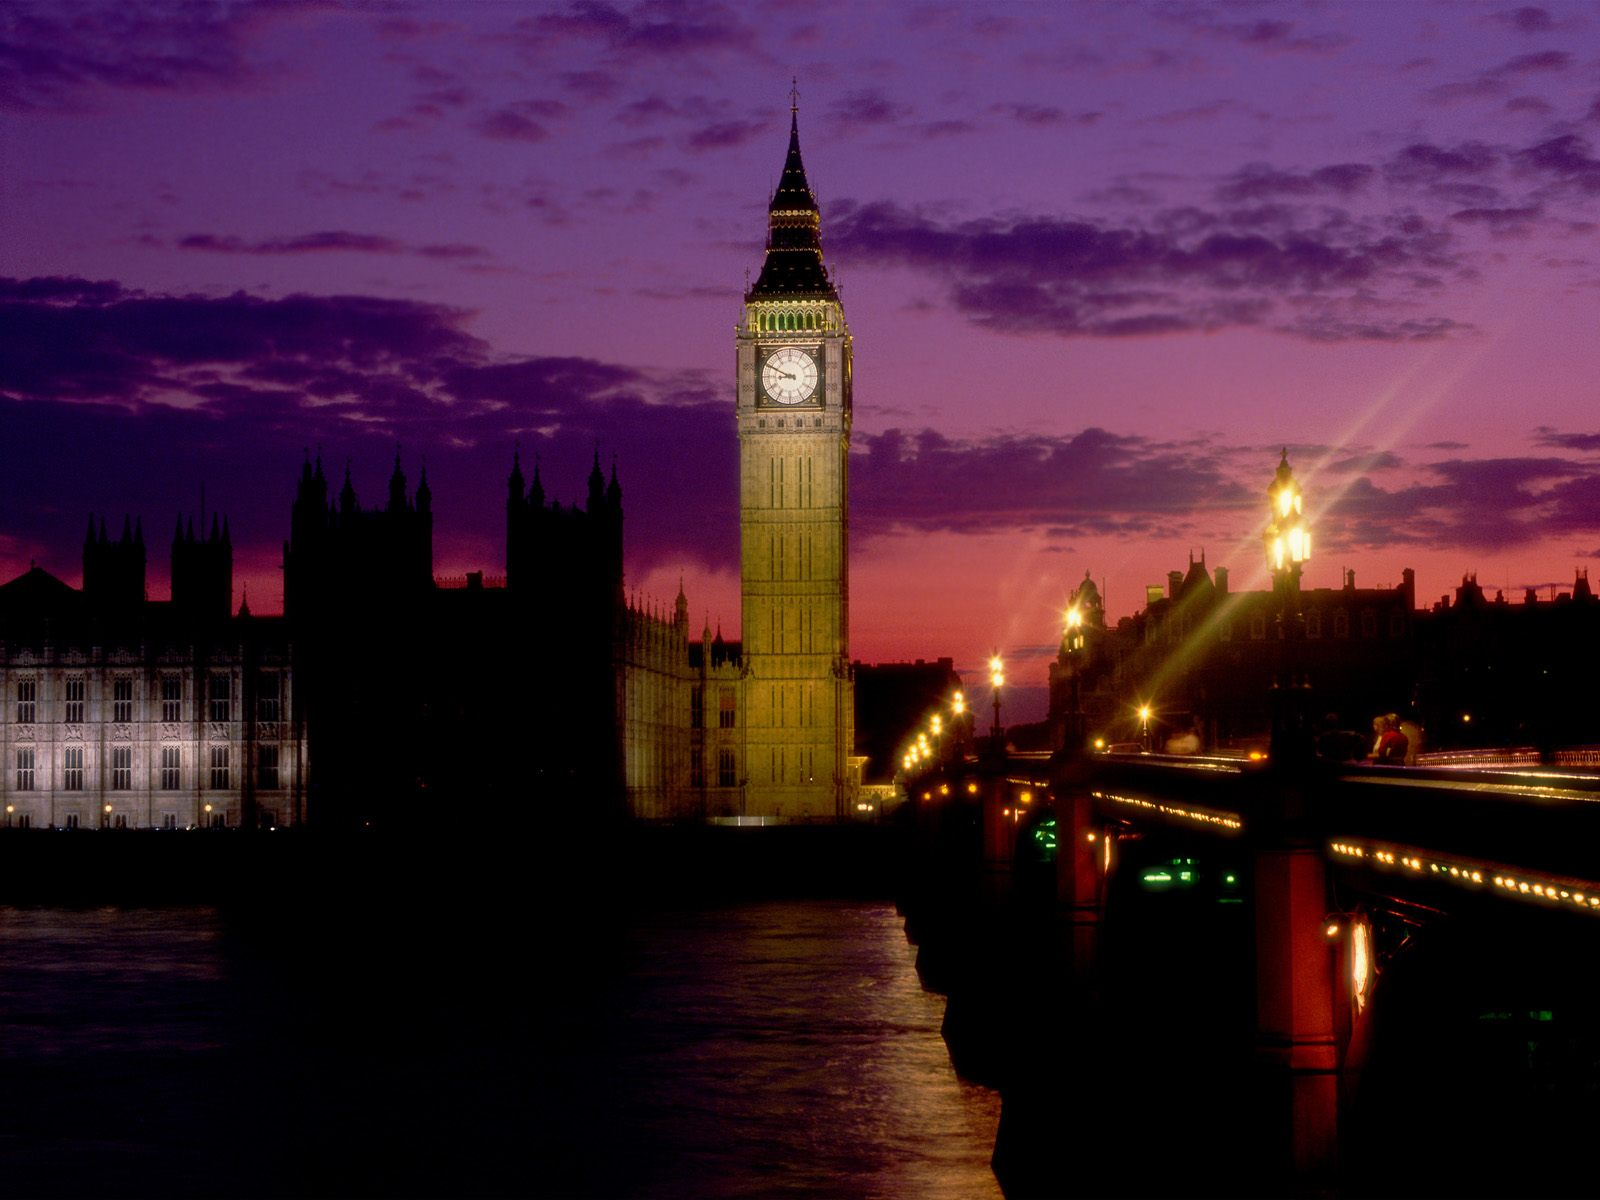 http://1.bp.blogspot.com/_WOWQJUlRtKQ/TR2wM2N1mtI/AAAAAAAABY8/s3M69B5Rc9A/s1600/london_big_ben_wallpaper.jpg